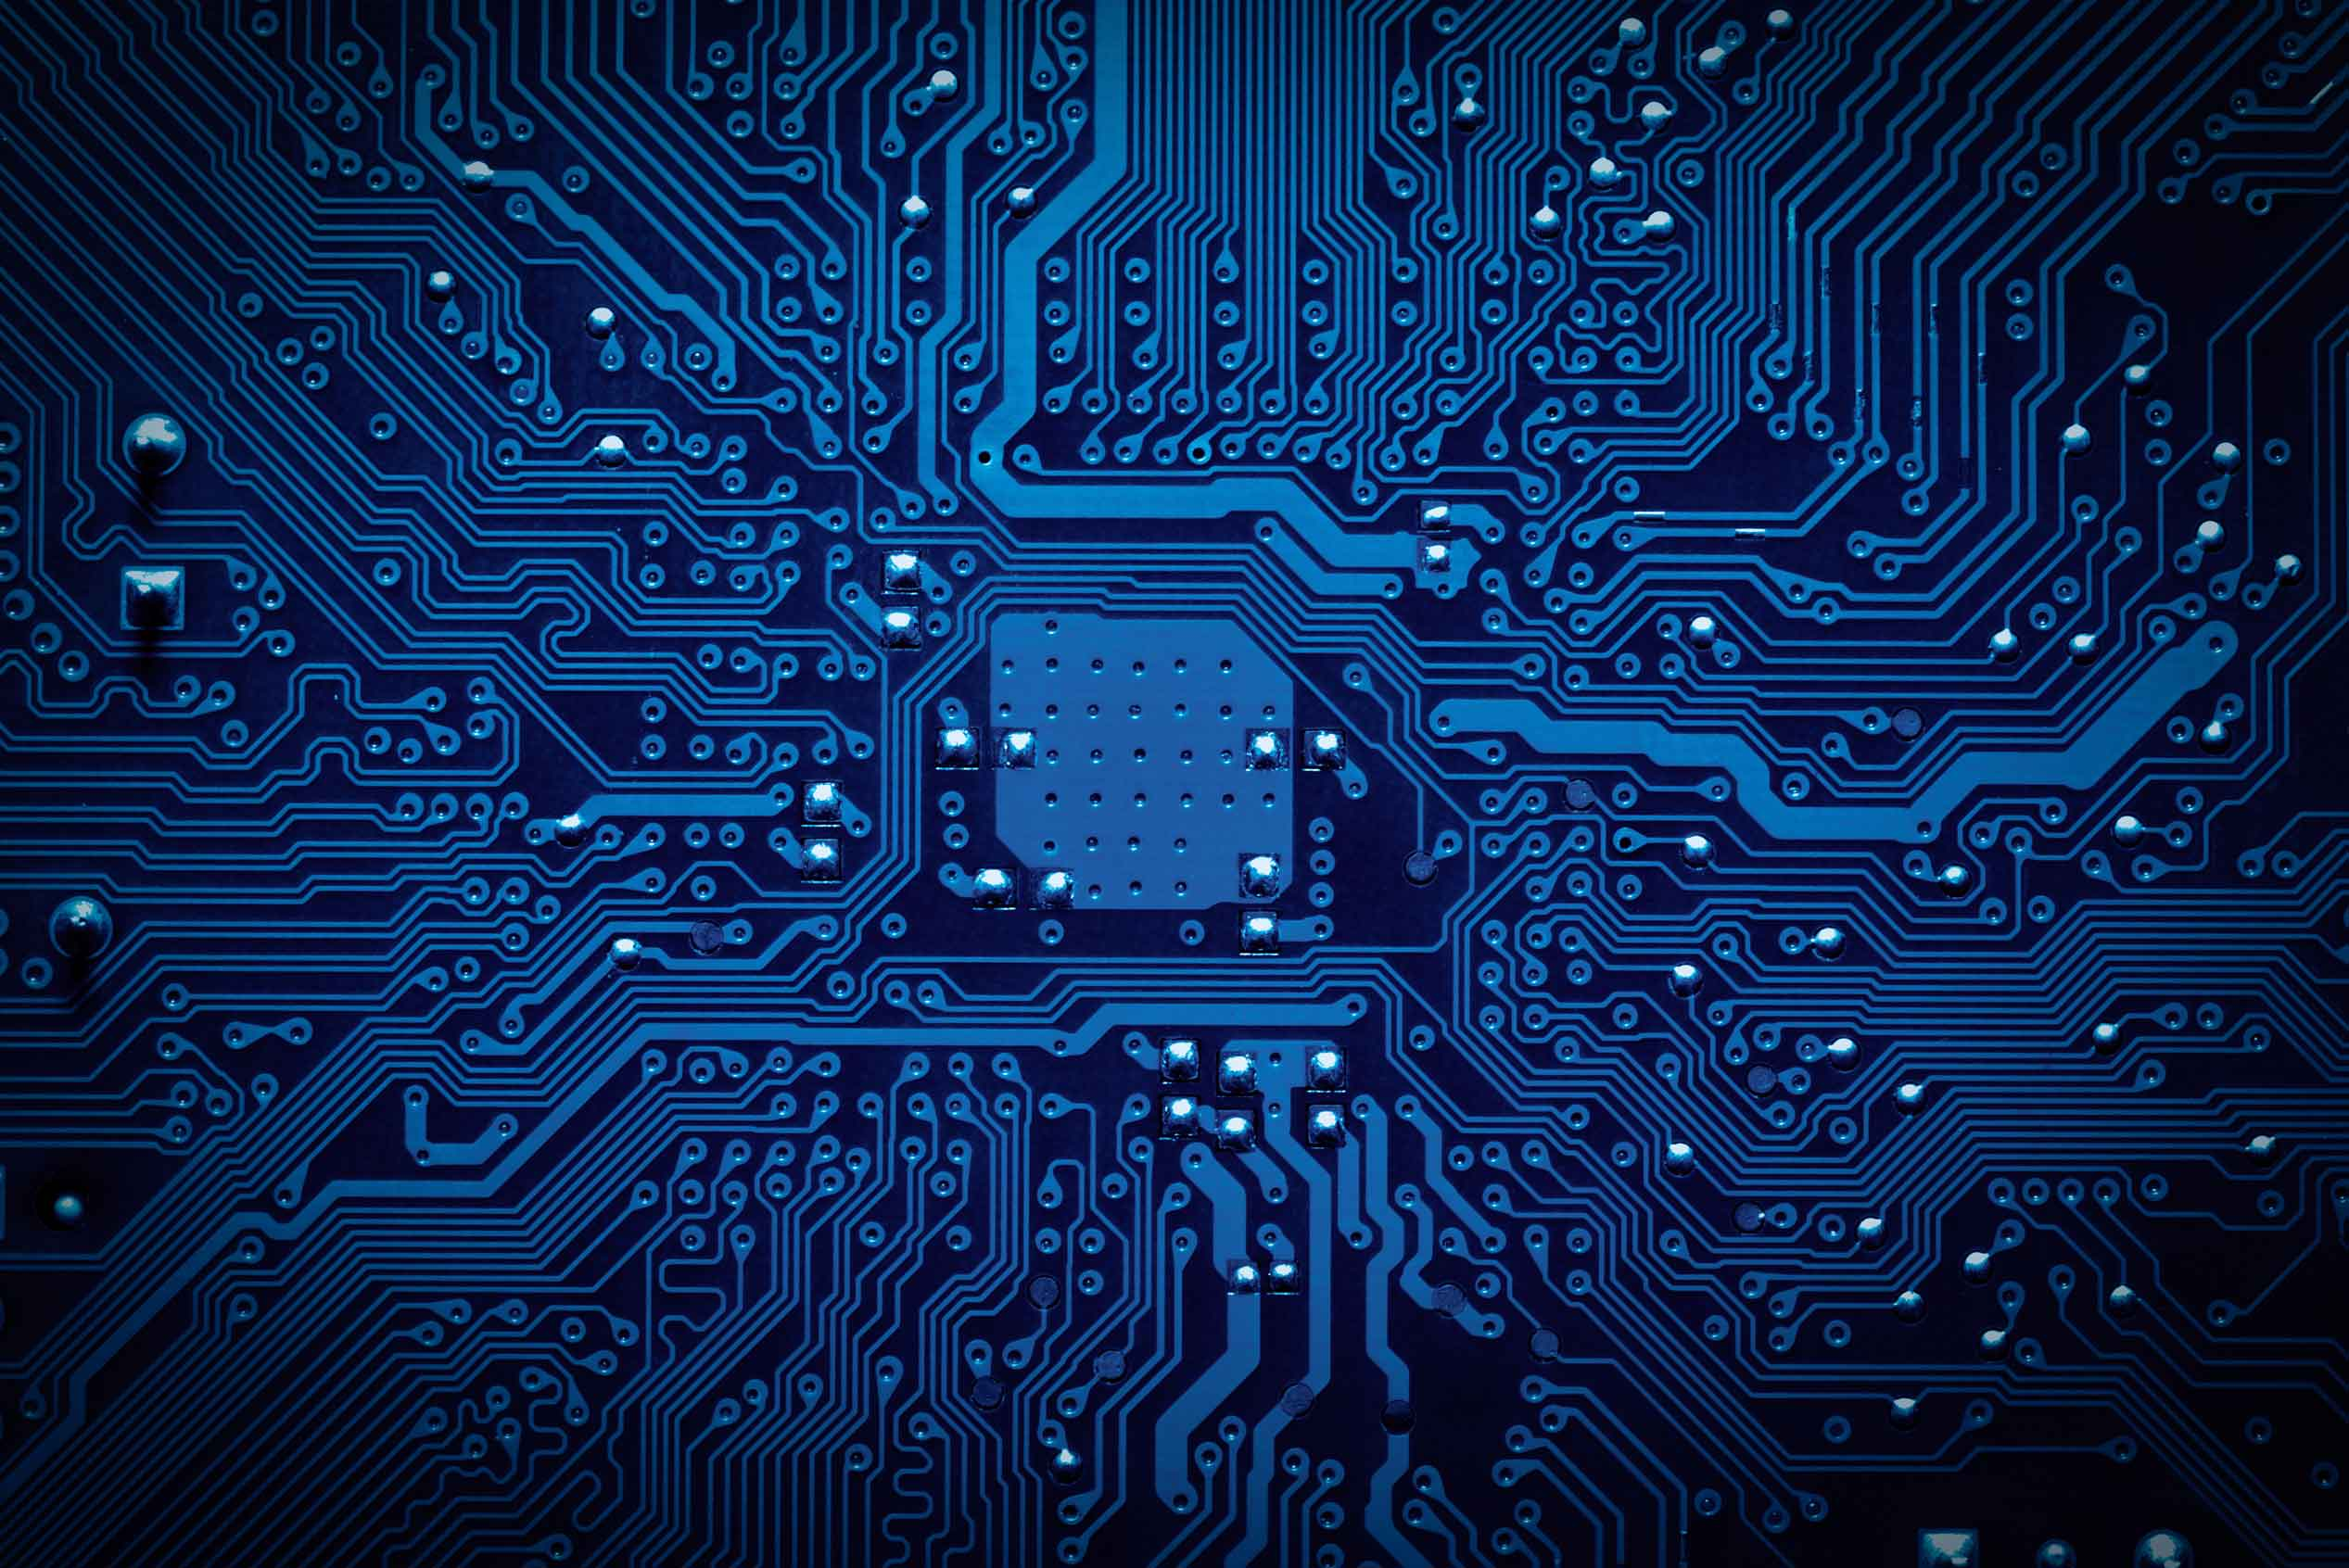 circuitboard-low-res